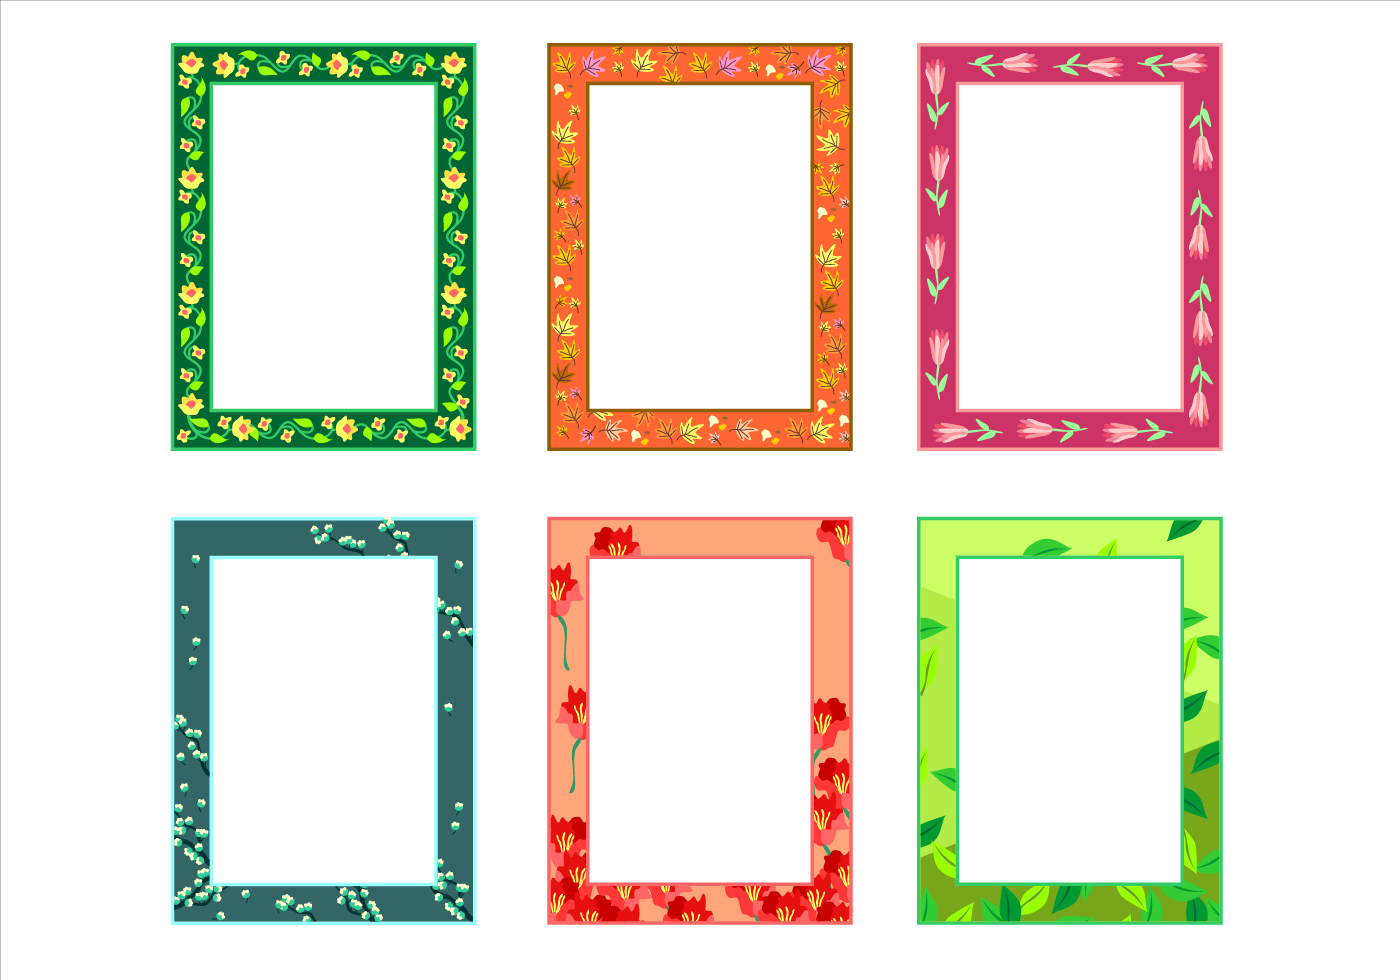 Natural Potrait Funky Frames Free Vector - Download Free Vector Art ...